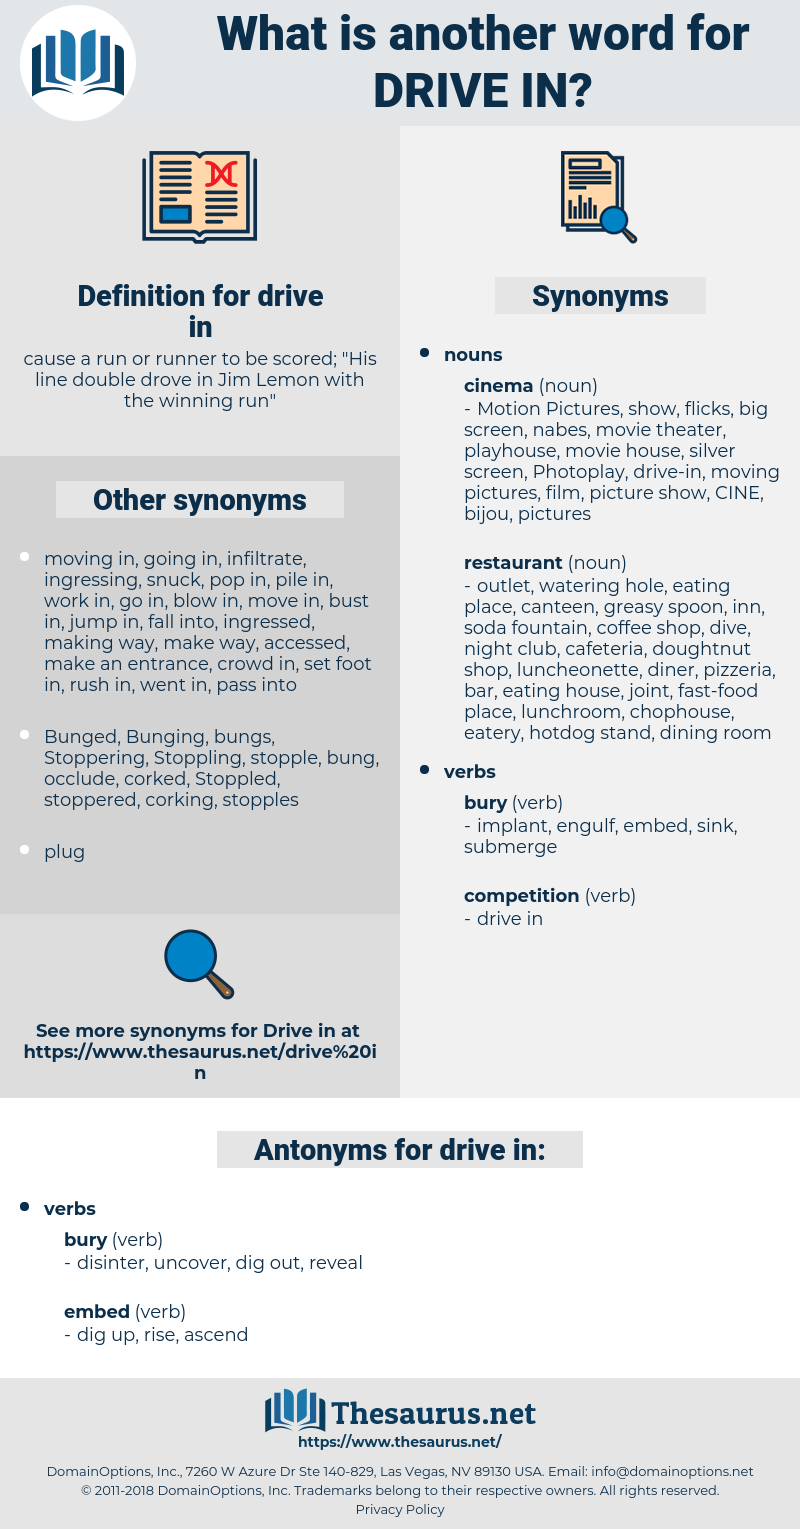 Synonyms for DRIVE IN, Antonyms for DRIVE IN - Thesaurus.net